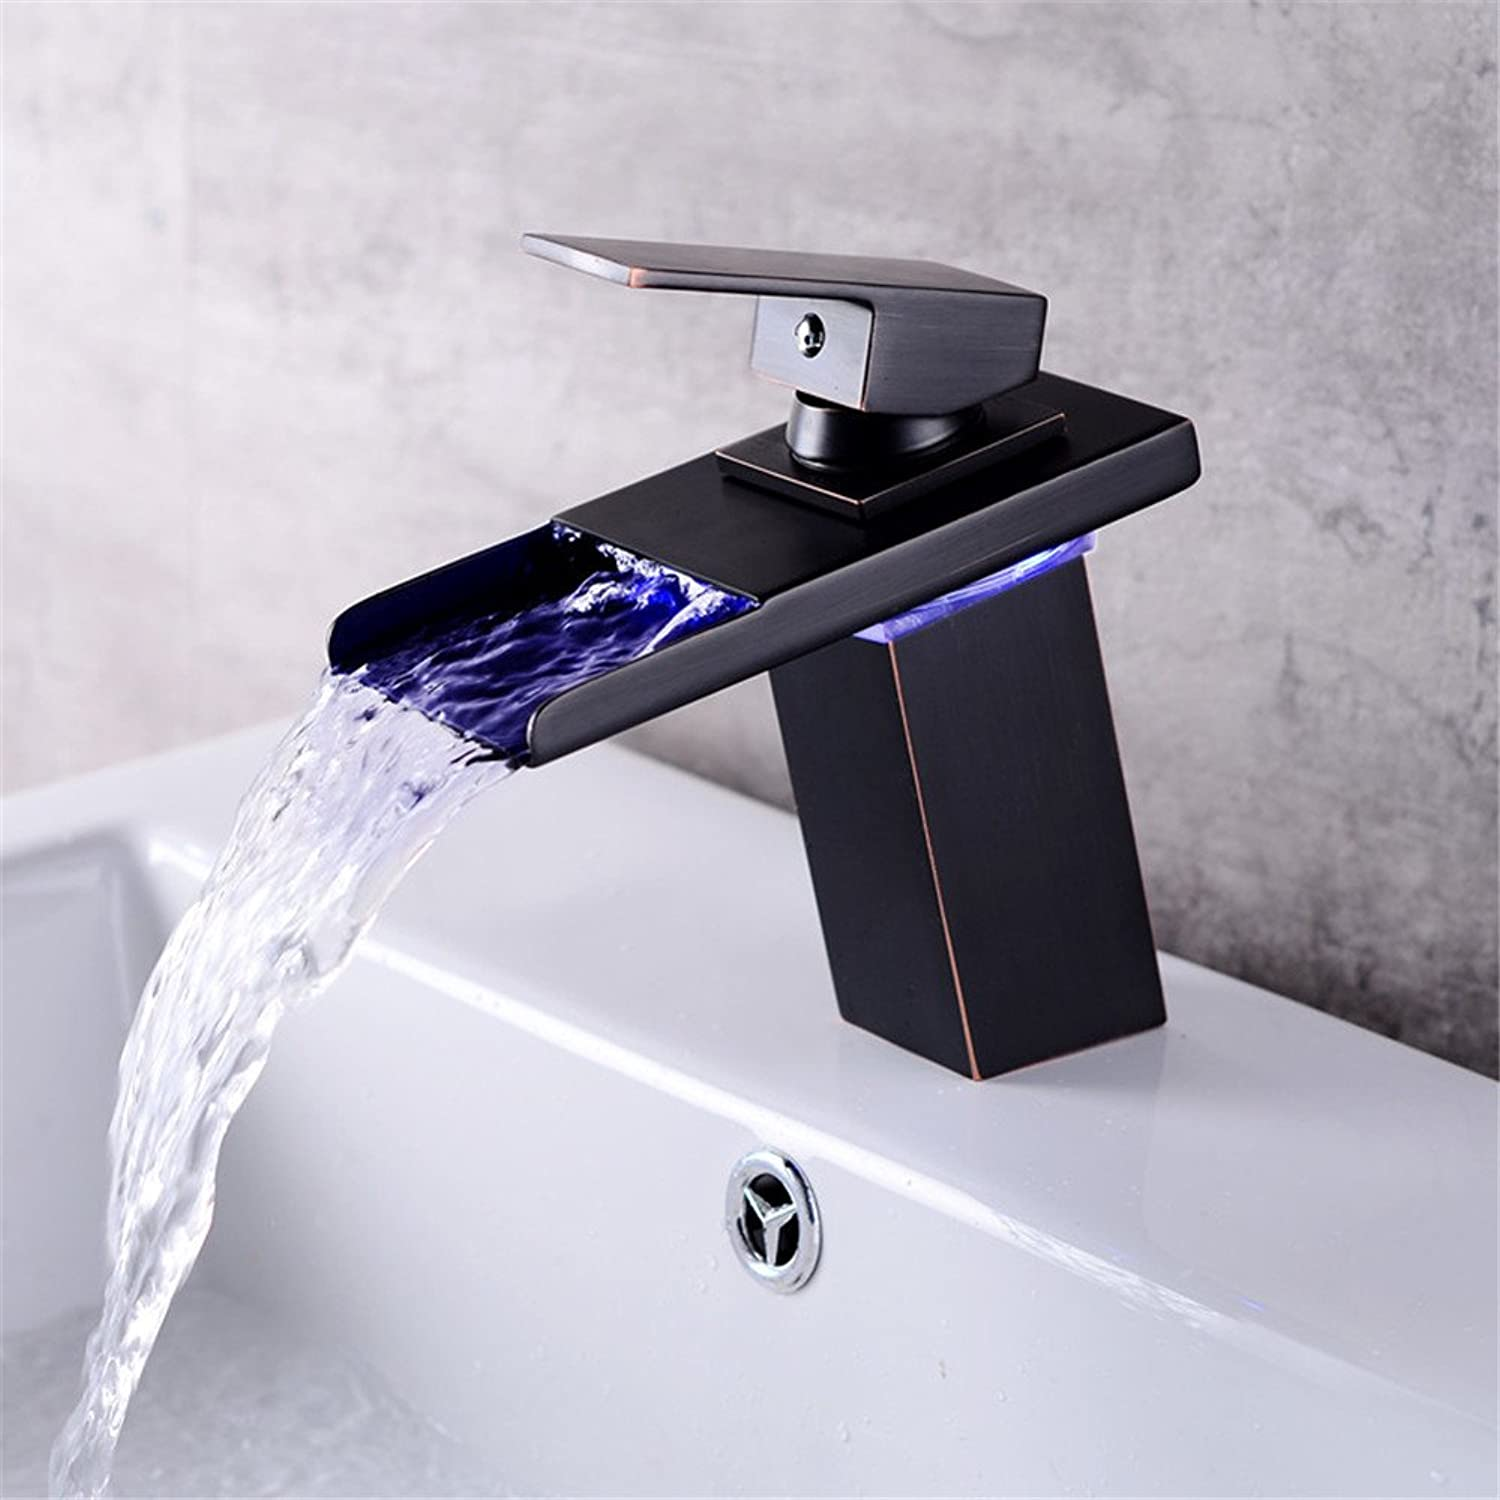 Bijjaladeva Antique Bathroom Sink Vessel Faucet Basin Mixer Tap Hot and cold water basin basin mixer basin waterfall light-emitting LED faucet Black Battery Version